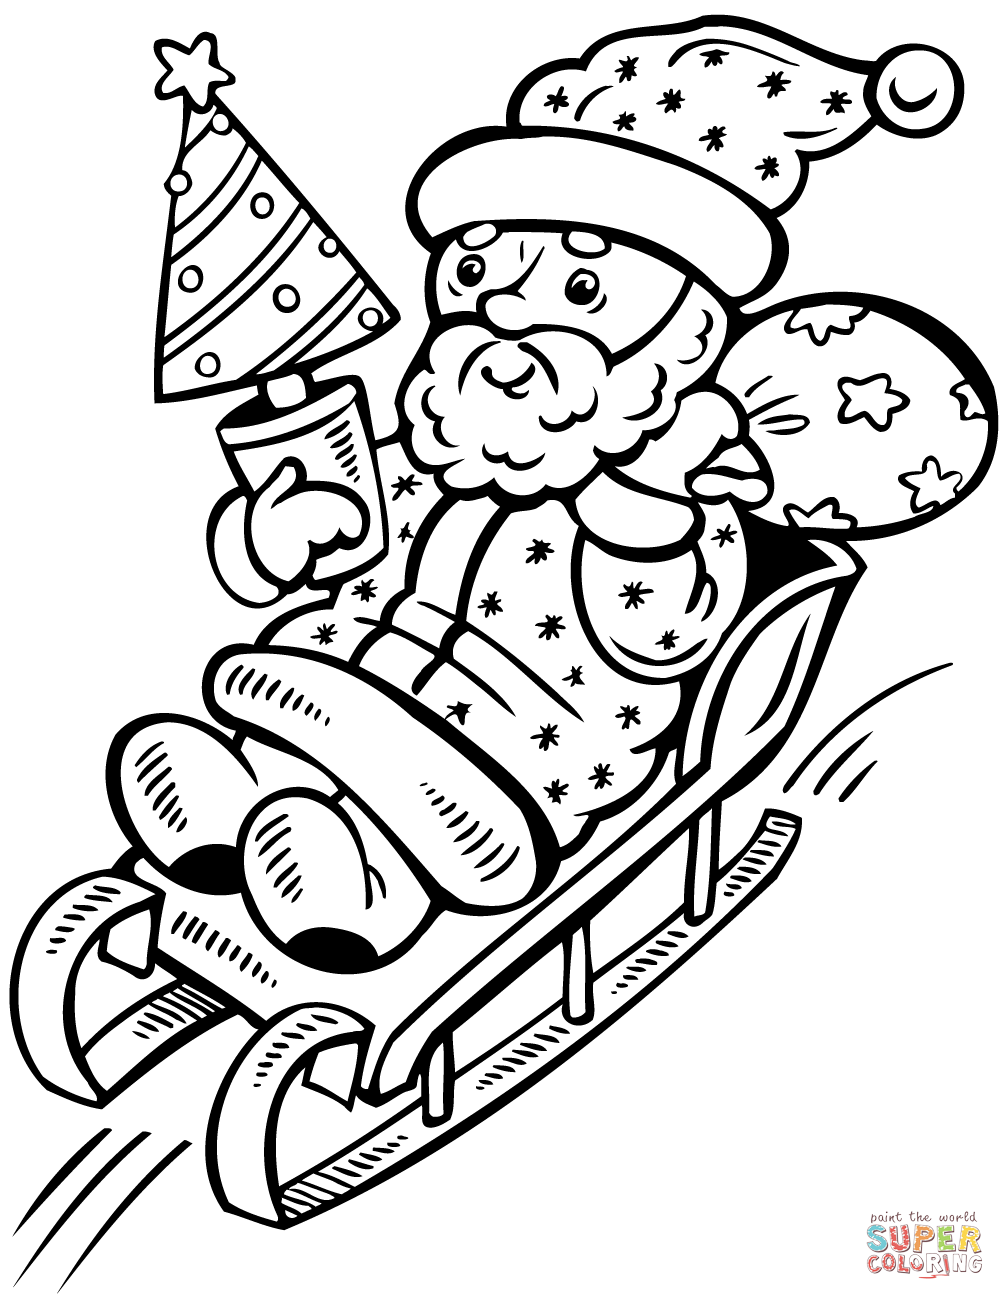 1005x1300 Santa Claus On Sleigh With Christmas Tree Coloring Page Free